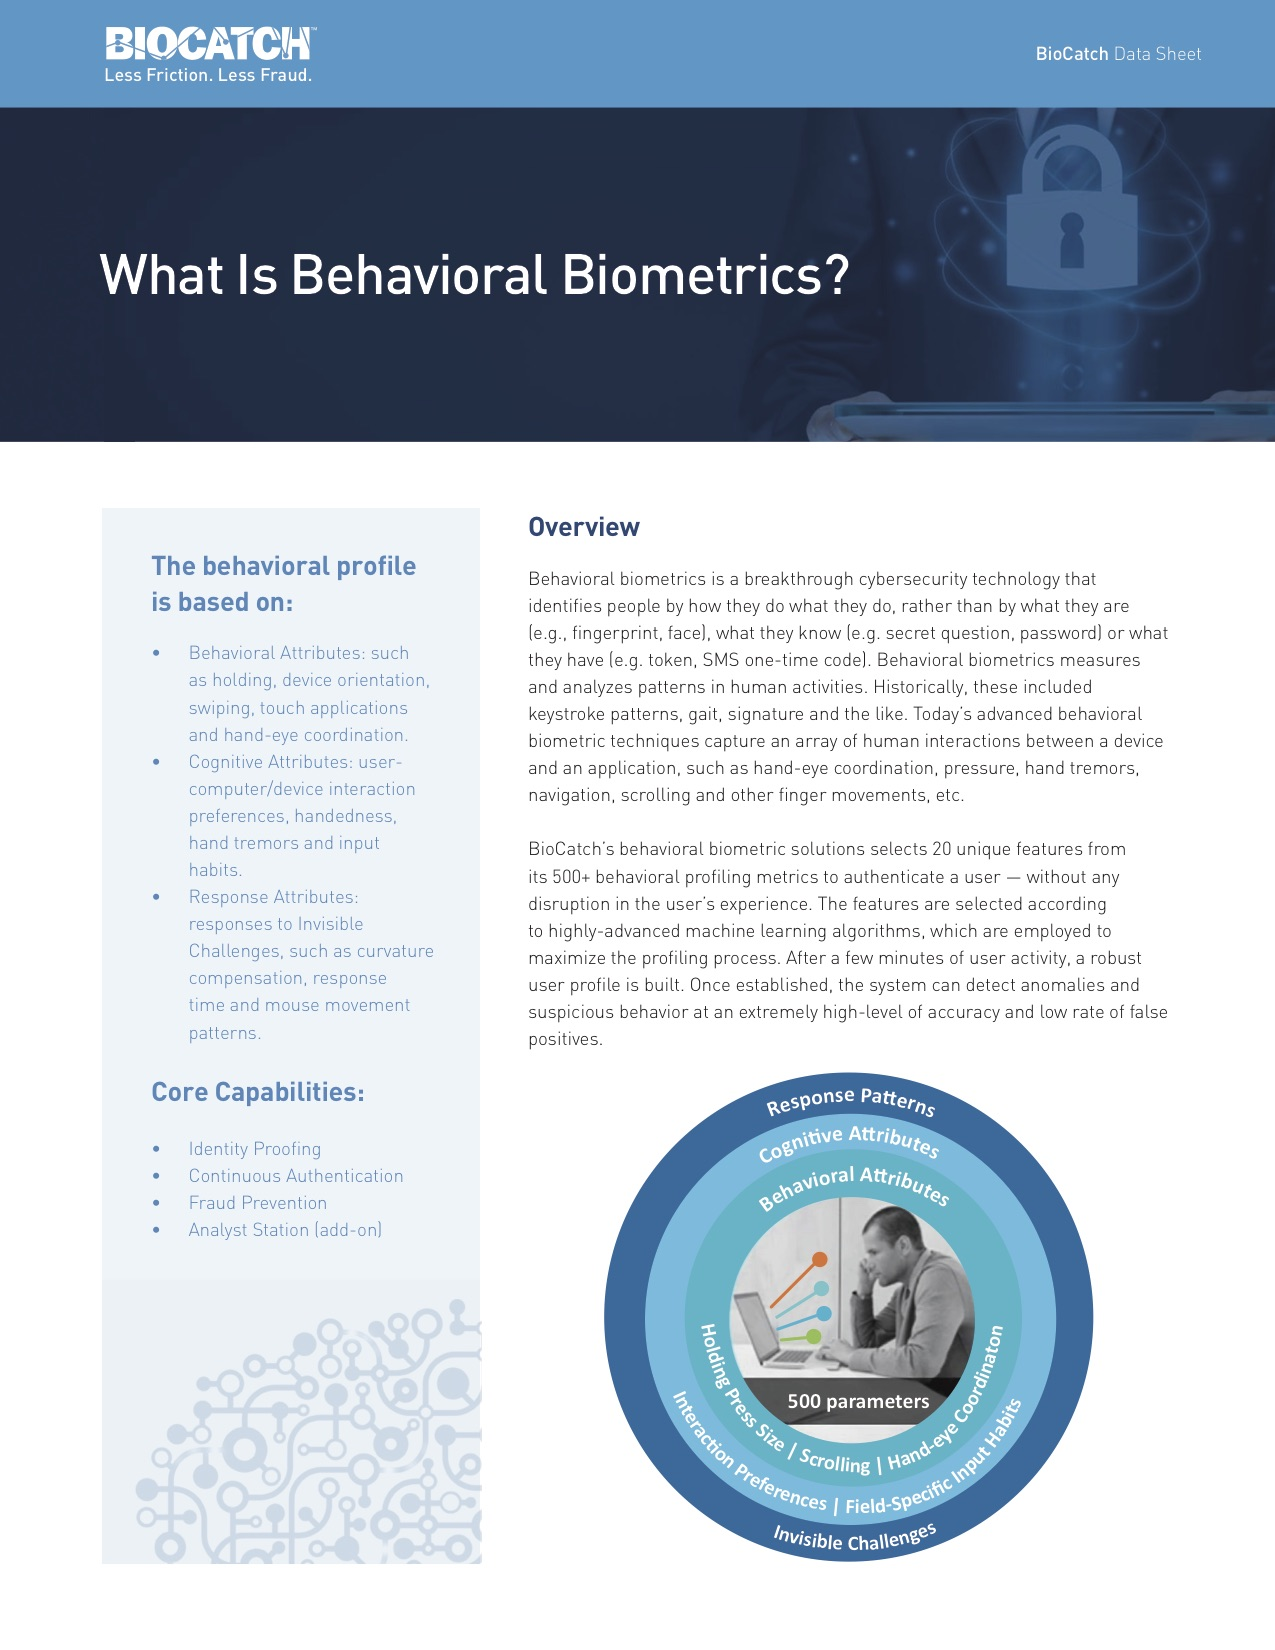 What is Behavioral Biometrics (1).jpg